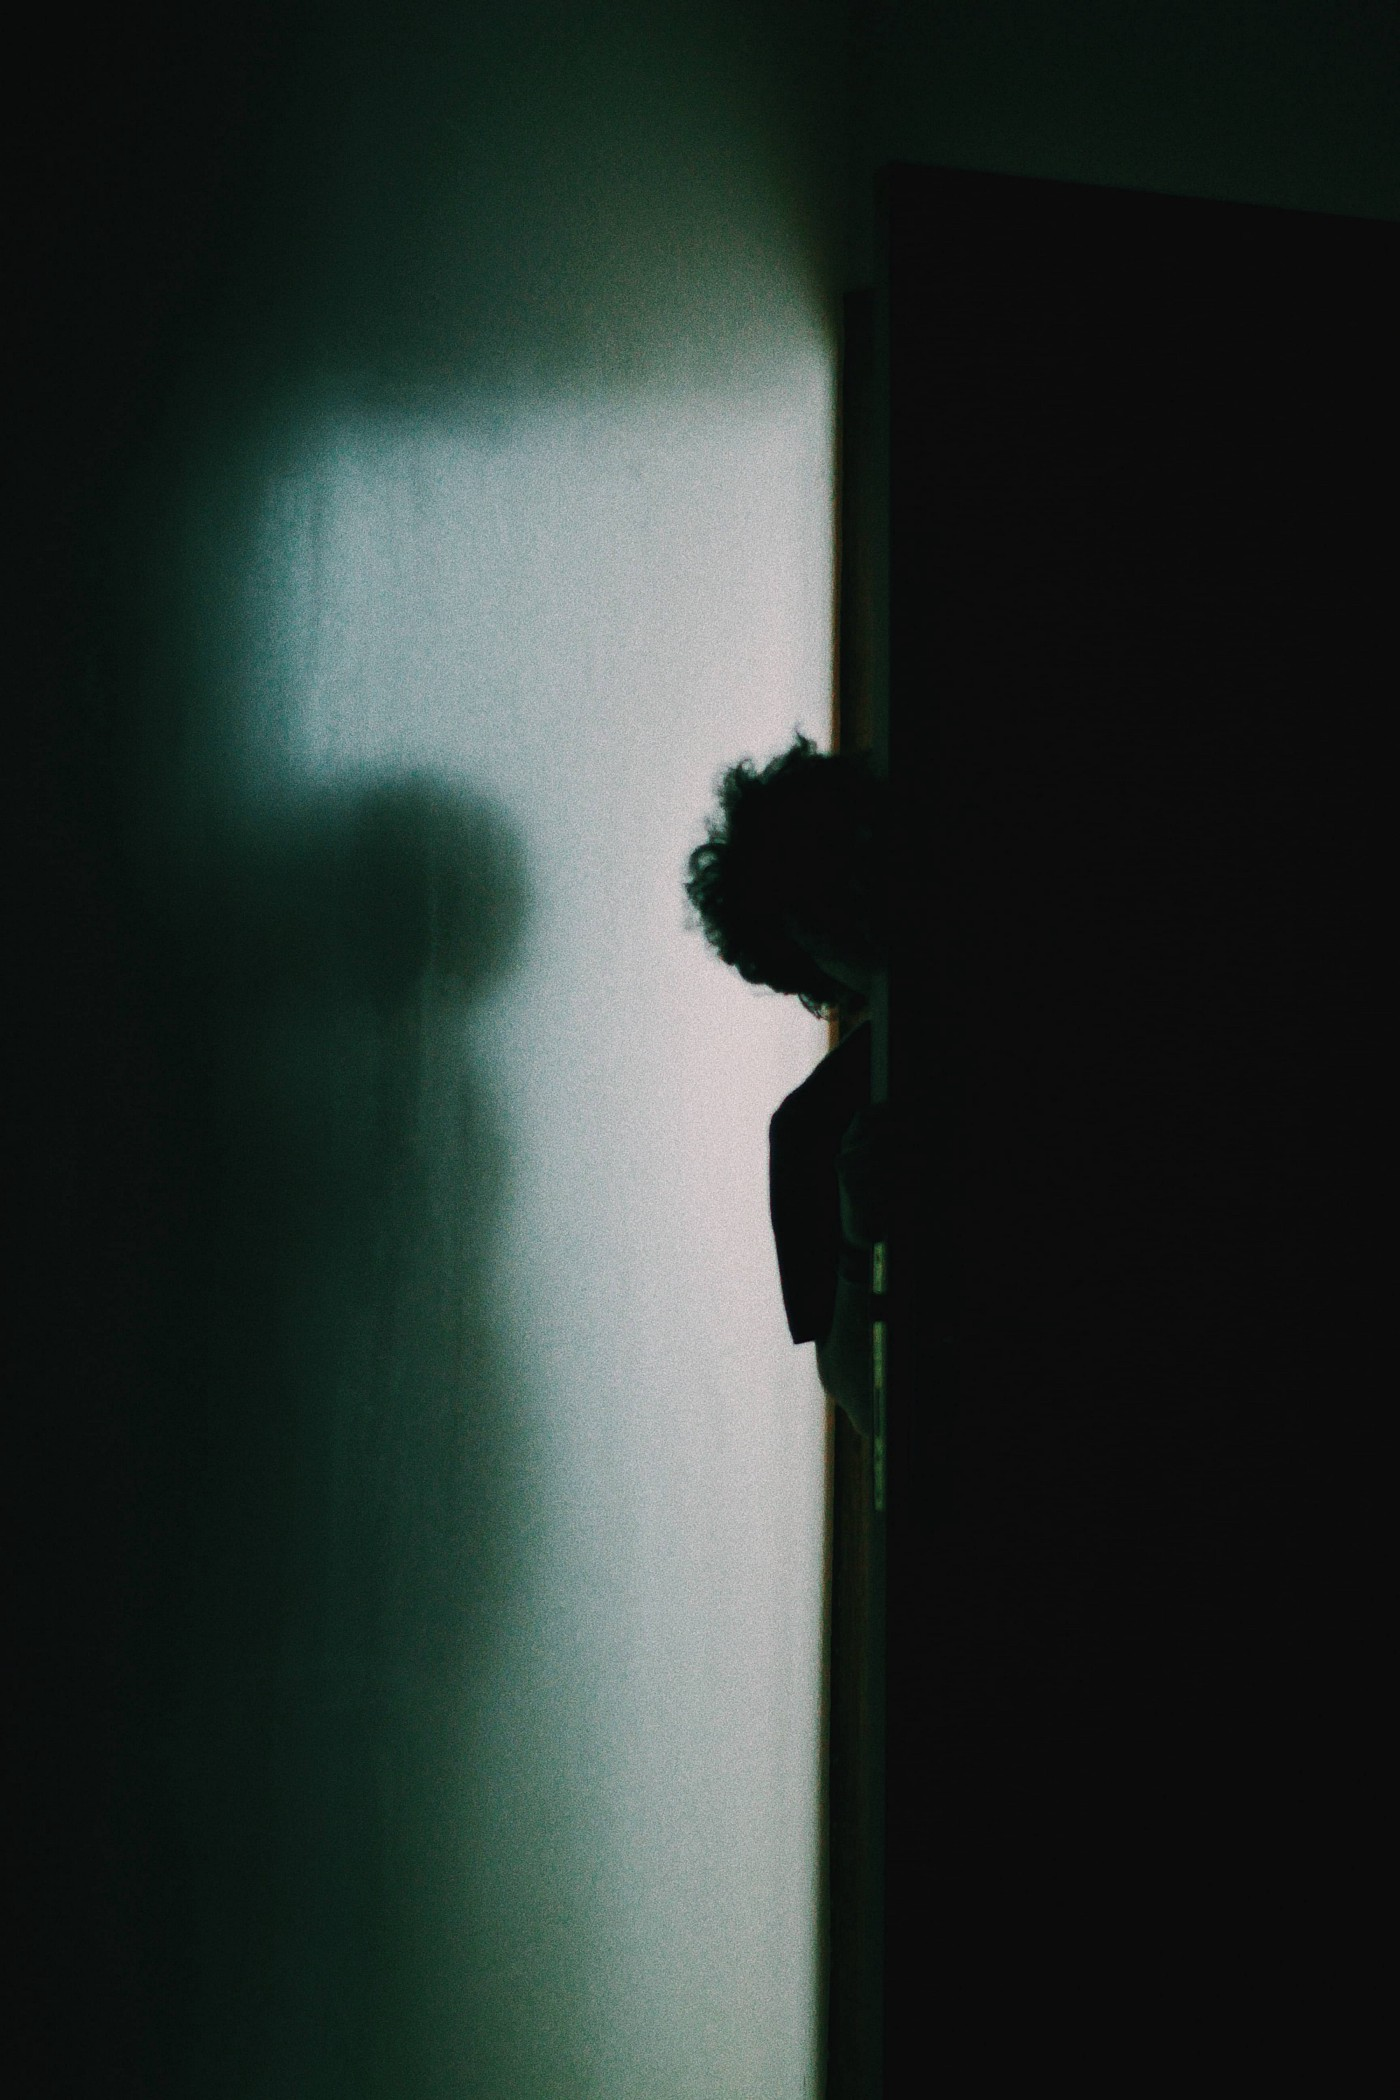 Photo Credit: Ammar Sabaa/Unsplash. A barely lit hallway and completely dark room. A boy shyly peeks around the corner of the dimly lit hall into the dark room.